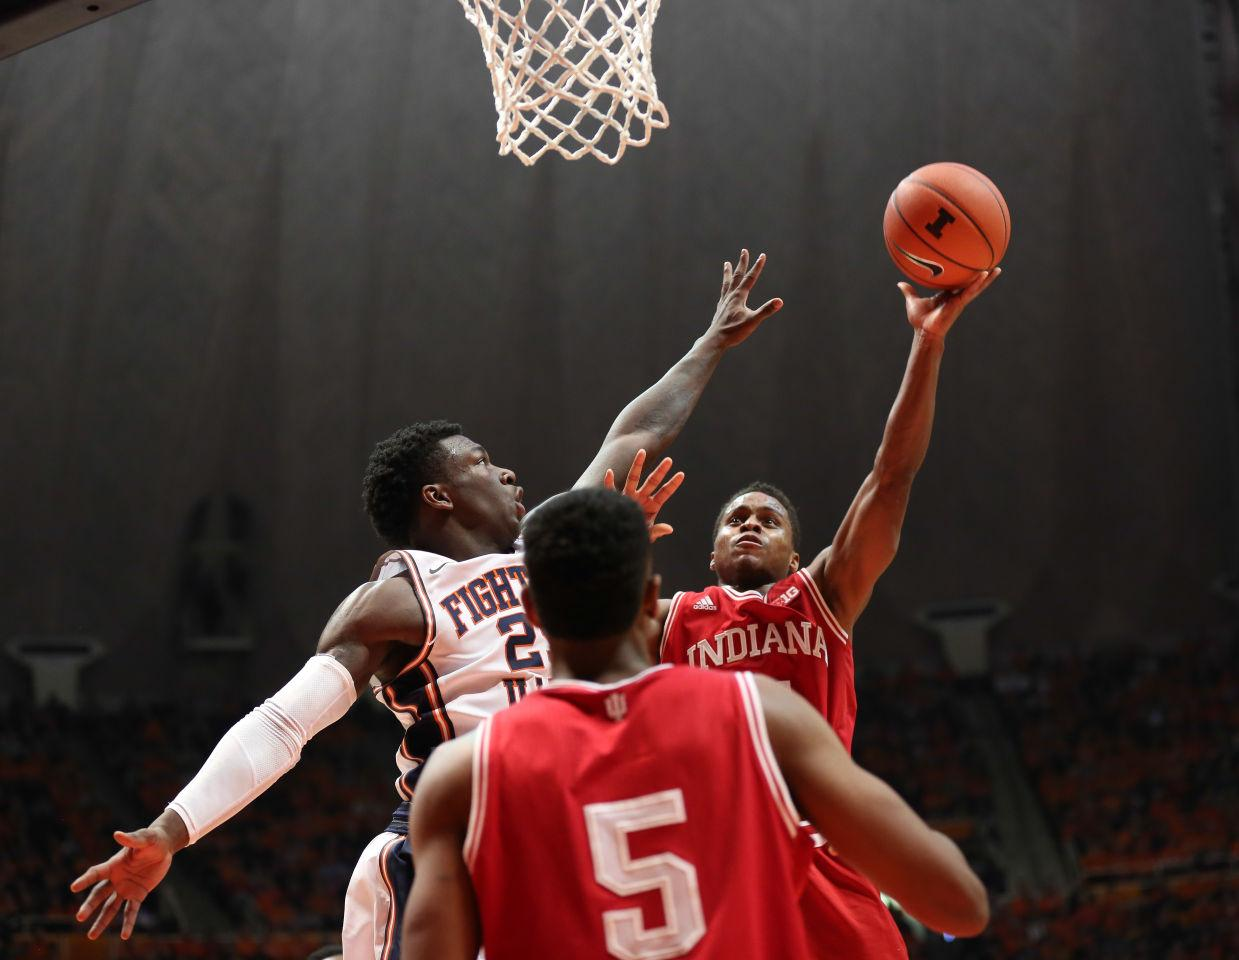 Illinois' Kendrick Nunn (25) attempts to stop Indiana's Yogi Ferrell's (11) attempt on basket during the game against Indiana at State Farm Center on Jan. 18, 2015. The Illini lost 80-74.